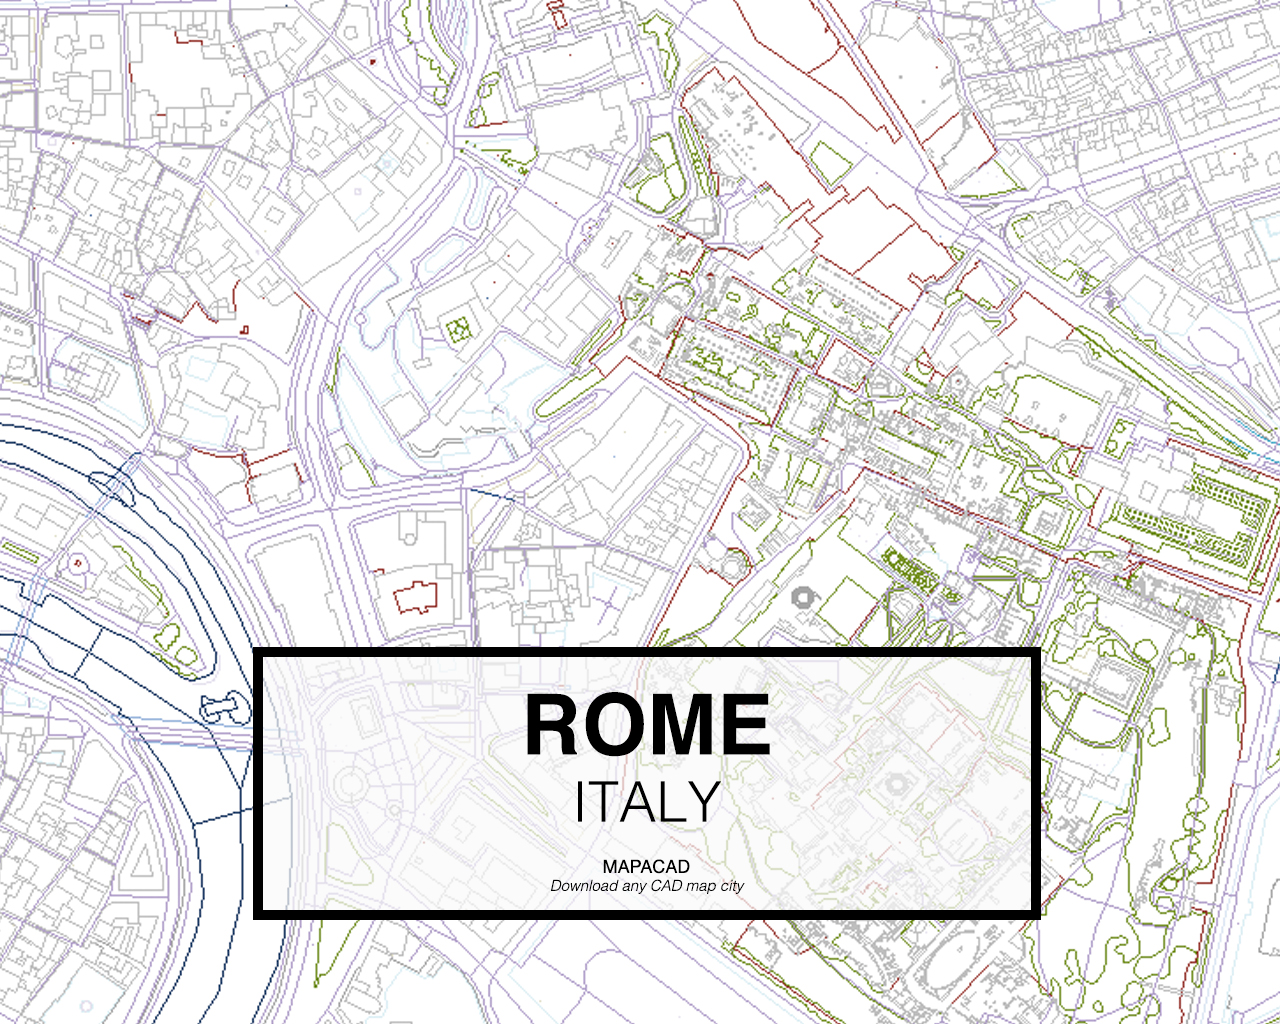 Rome DWG Mapacad - Rome map download